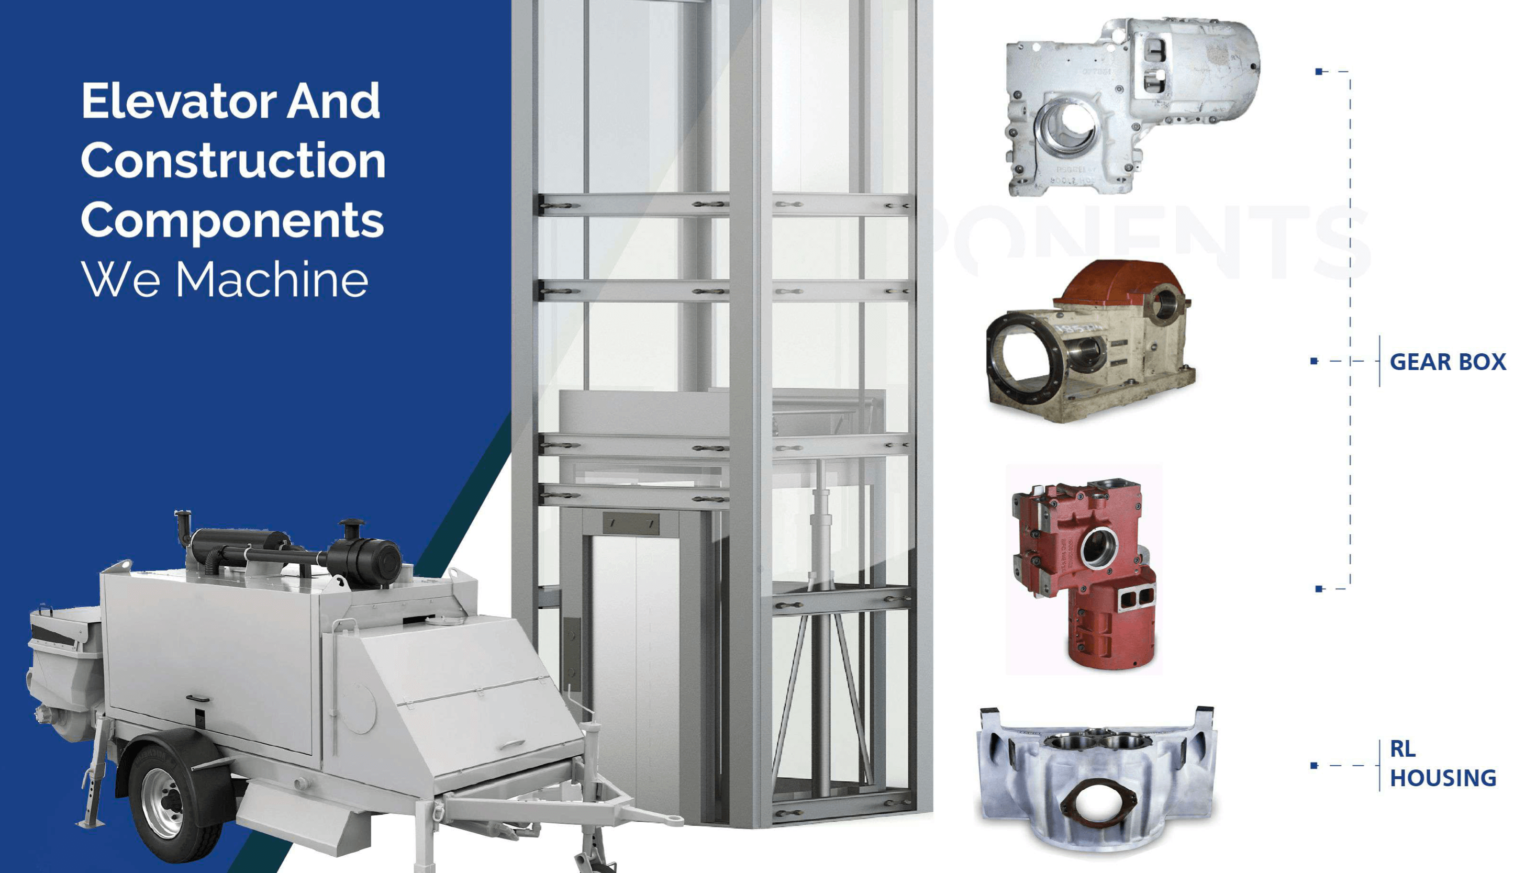 Elevator and construction components